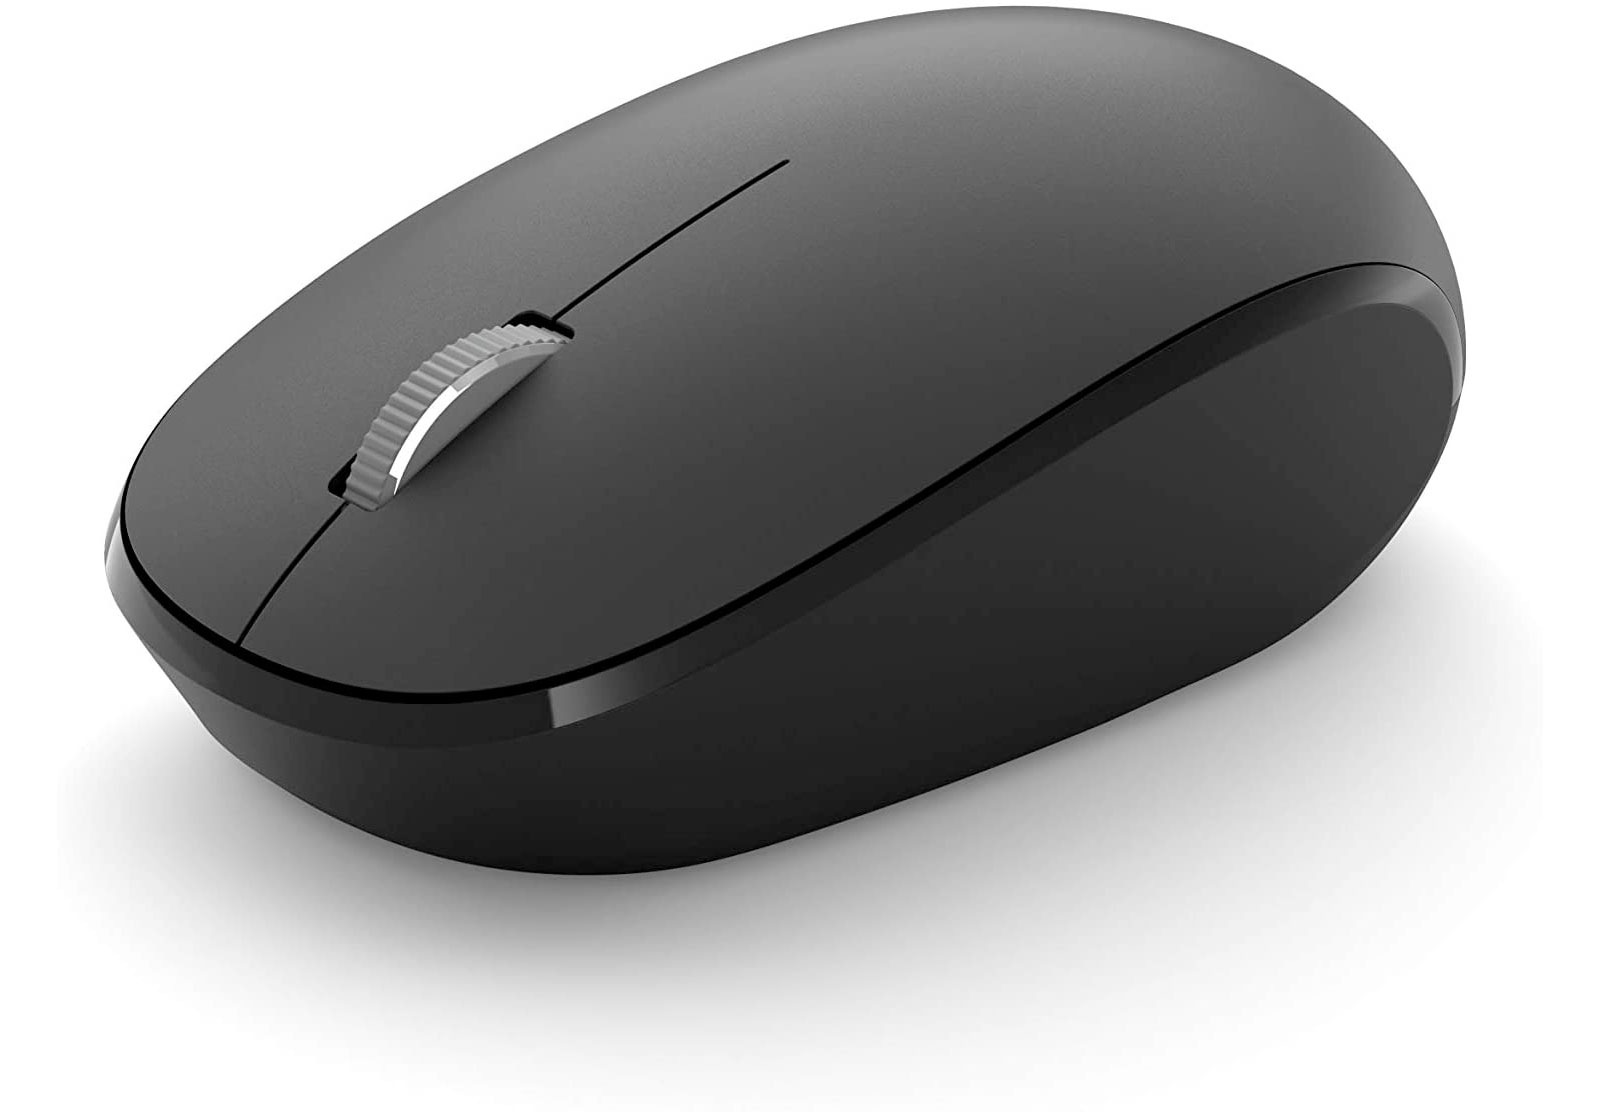 Amazon:Microsoft无线蓝牙鼠标 (Bluetooth Wireless Mouse)只卖$19.99